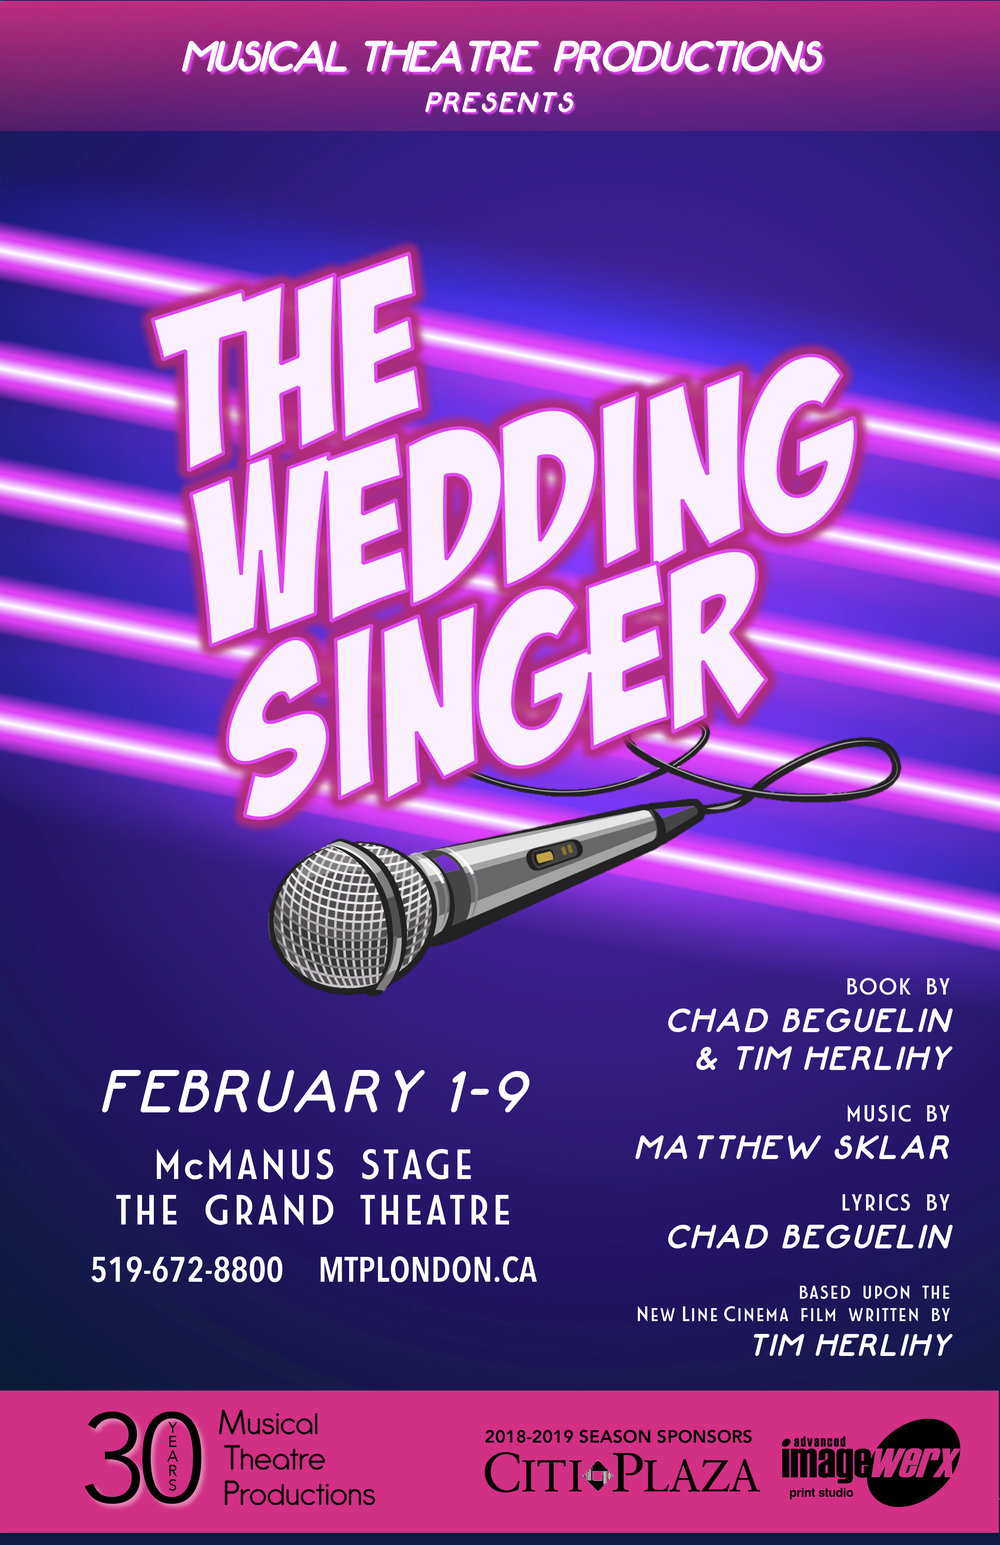 Wedding Singer Poster FINAL.jpg